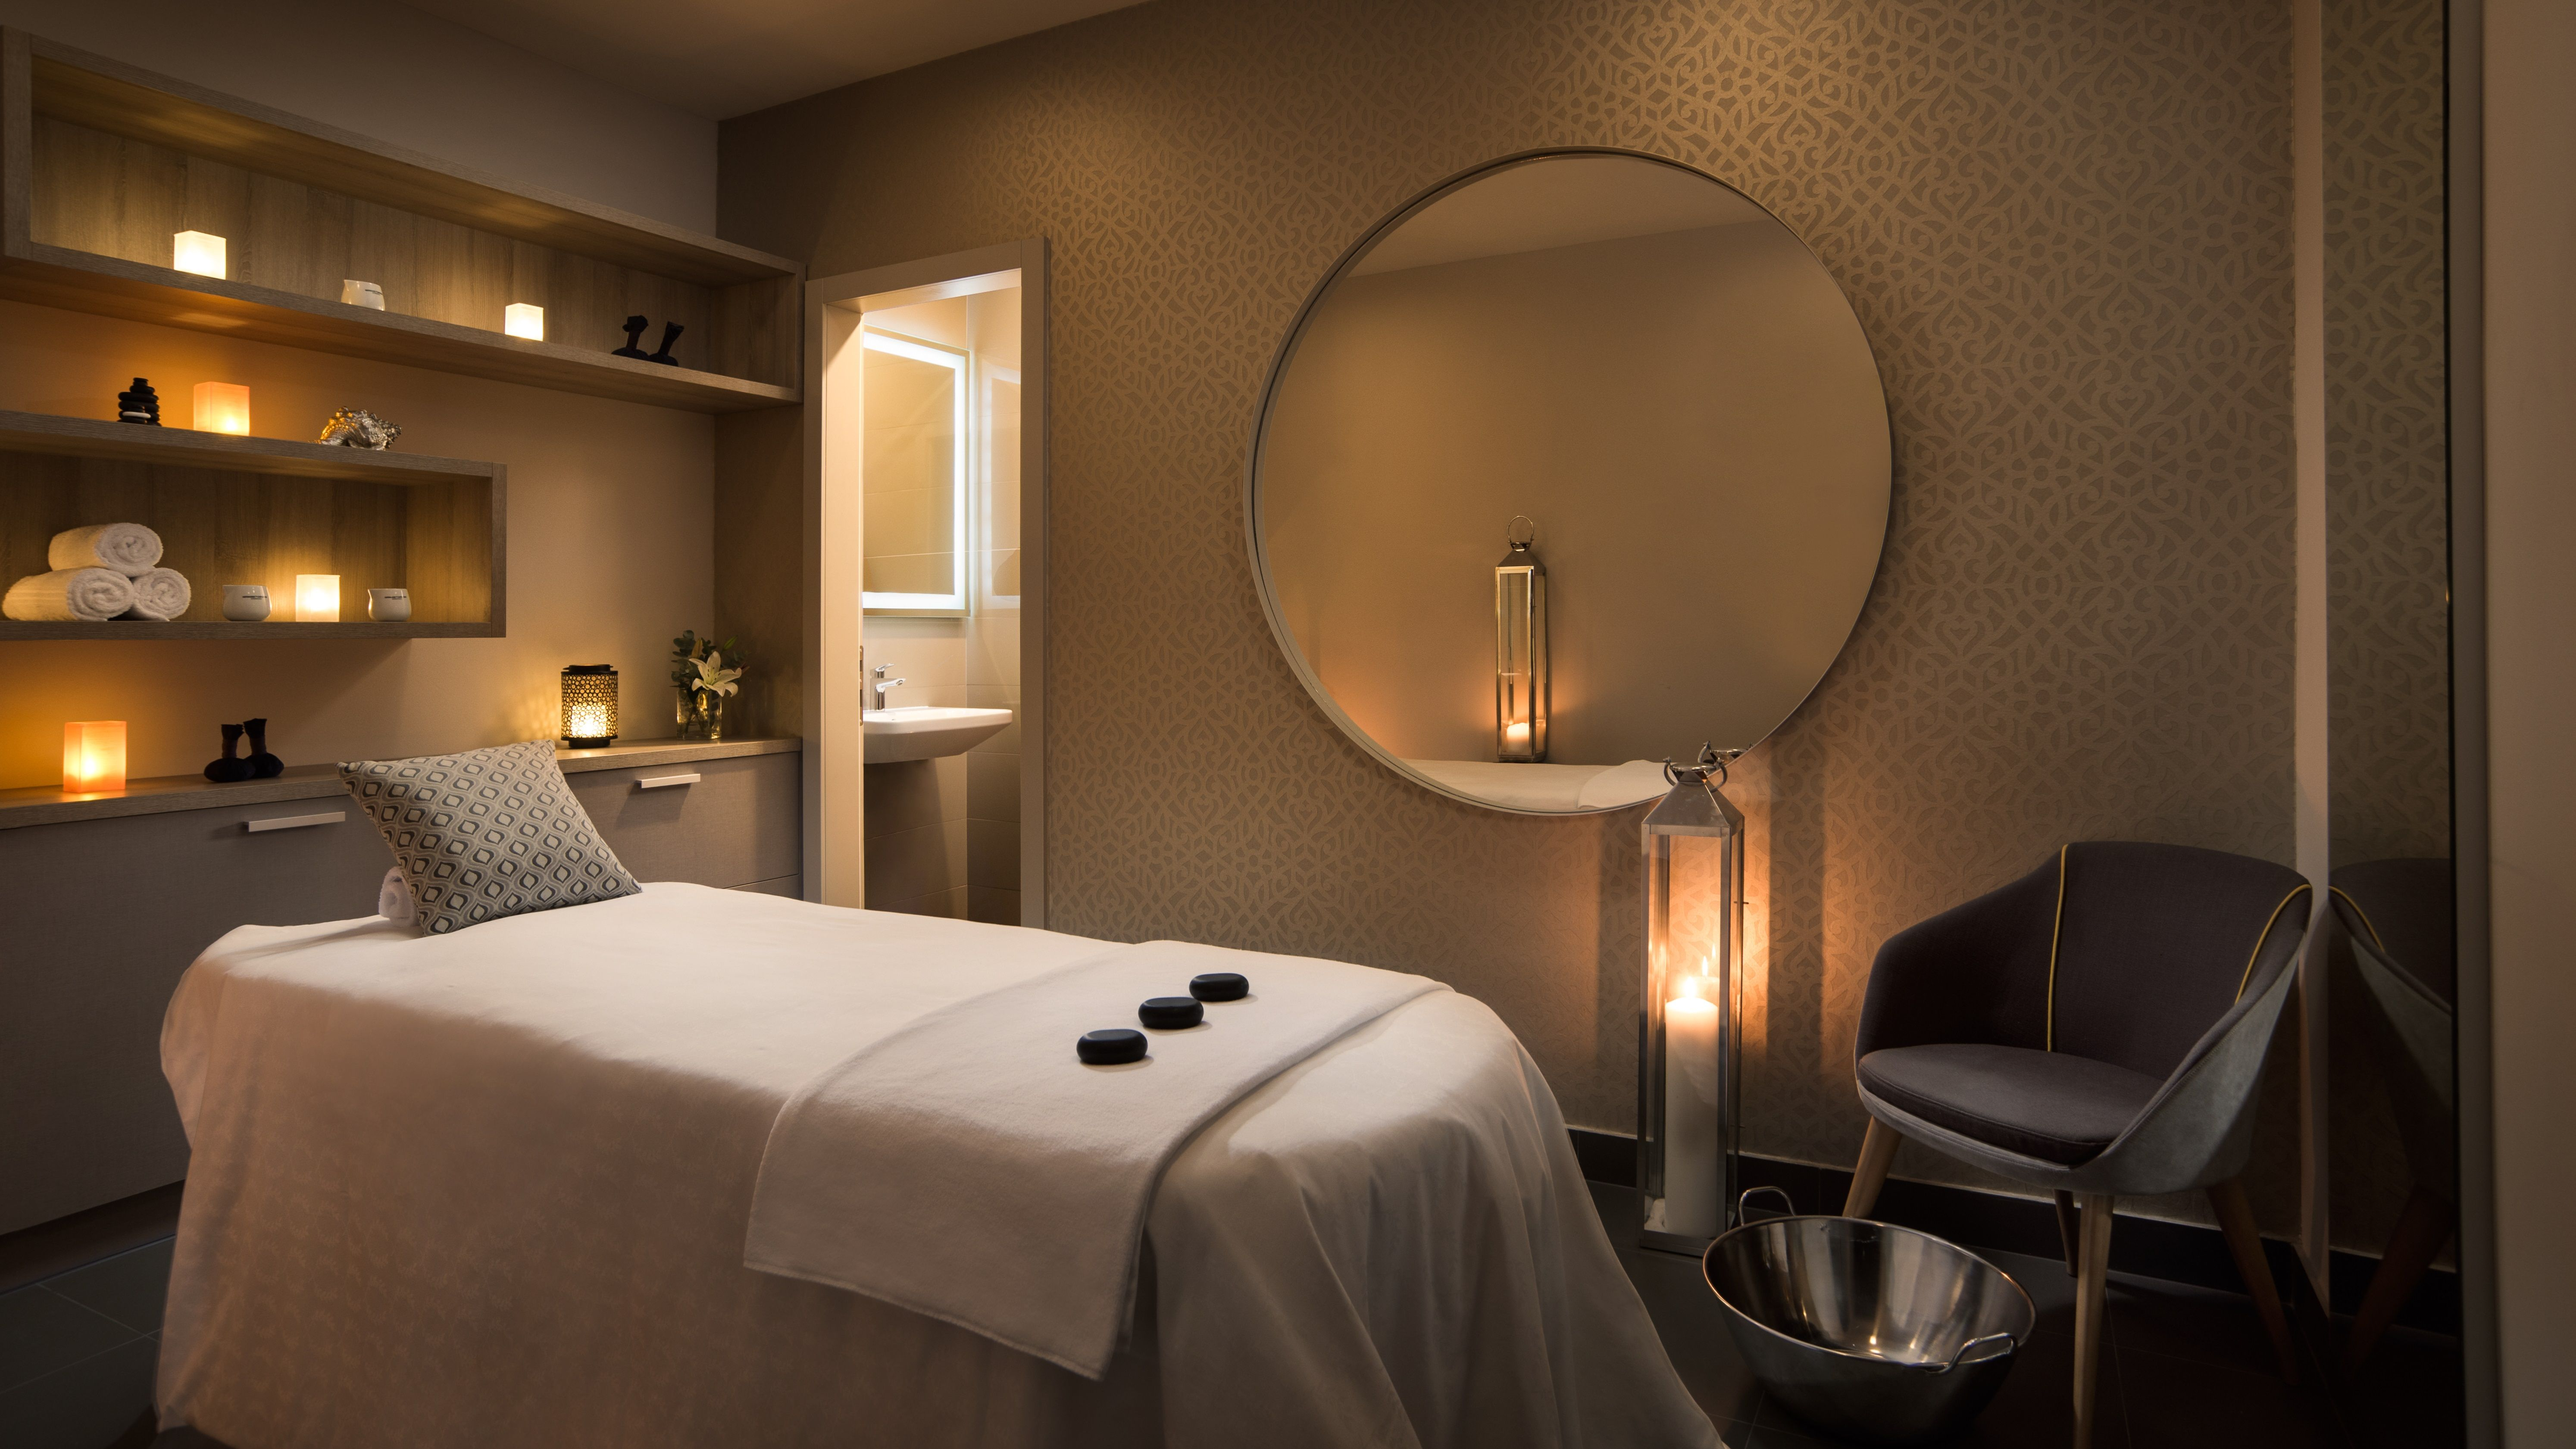 Hotel Rooms With Spa Wellness & Spa, Sheraton Dubrovnik Riviera Hotel